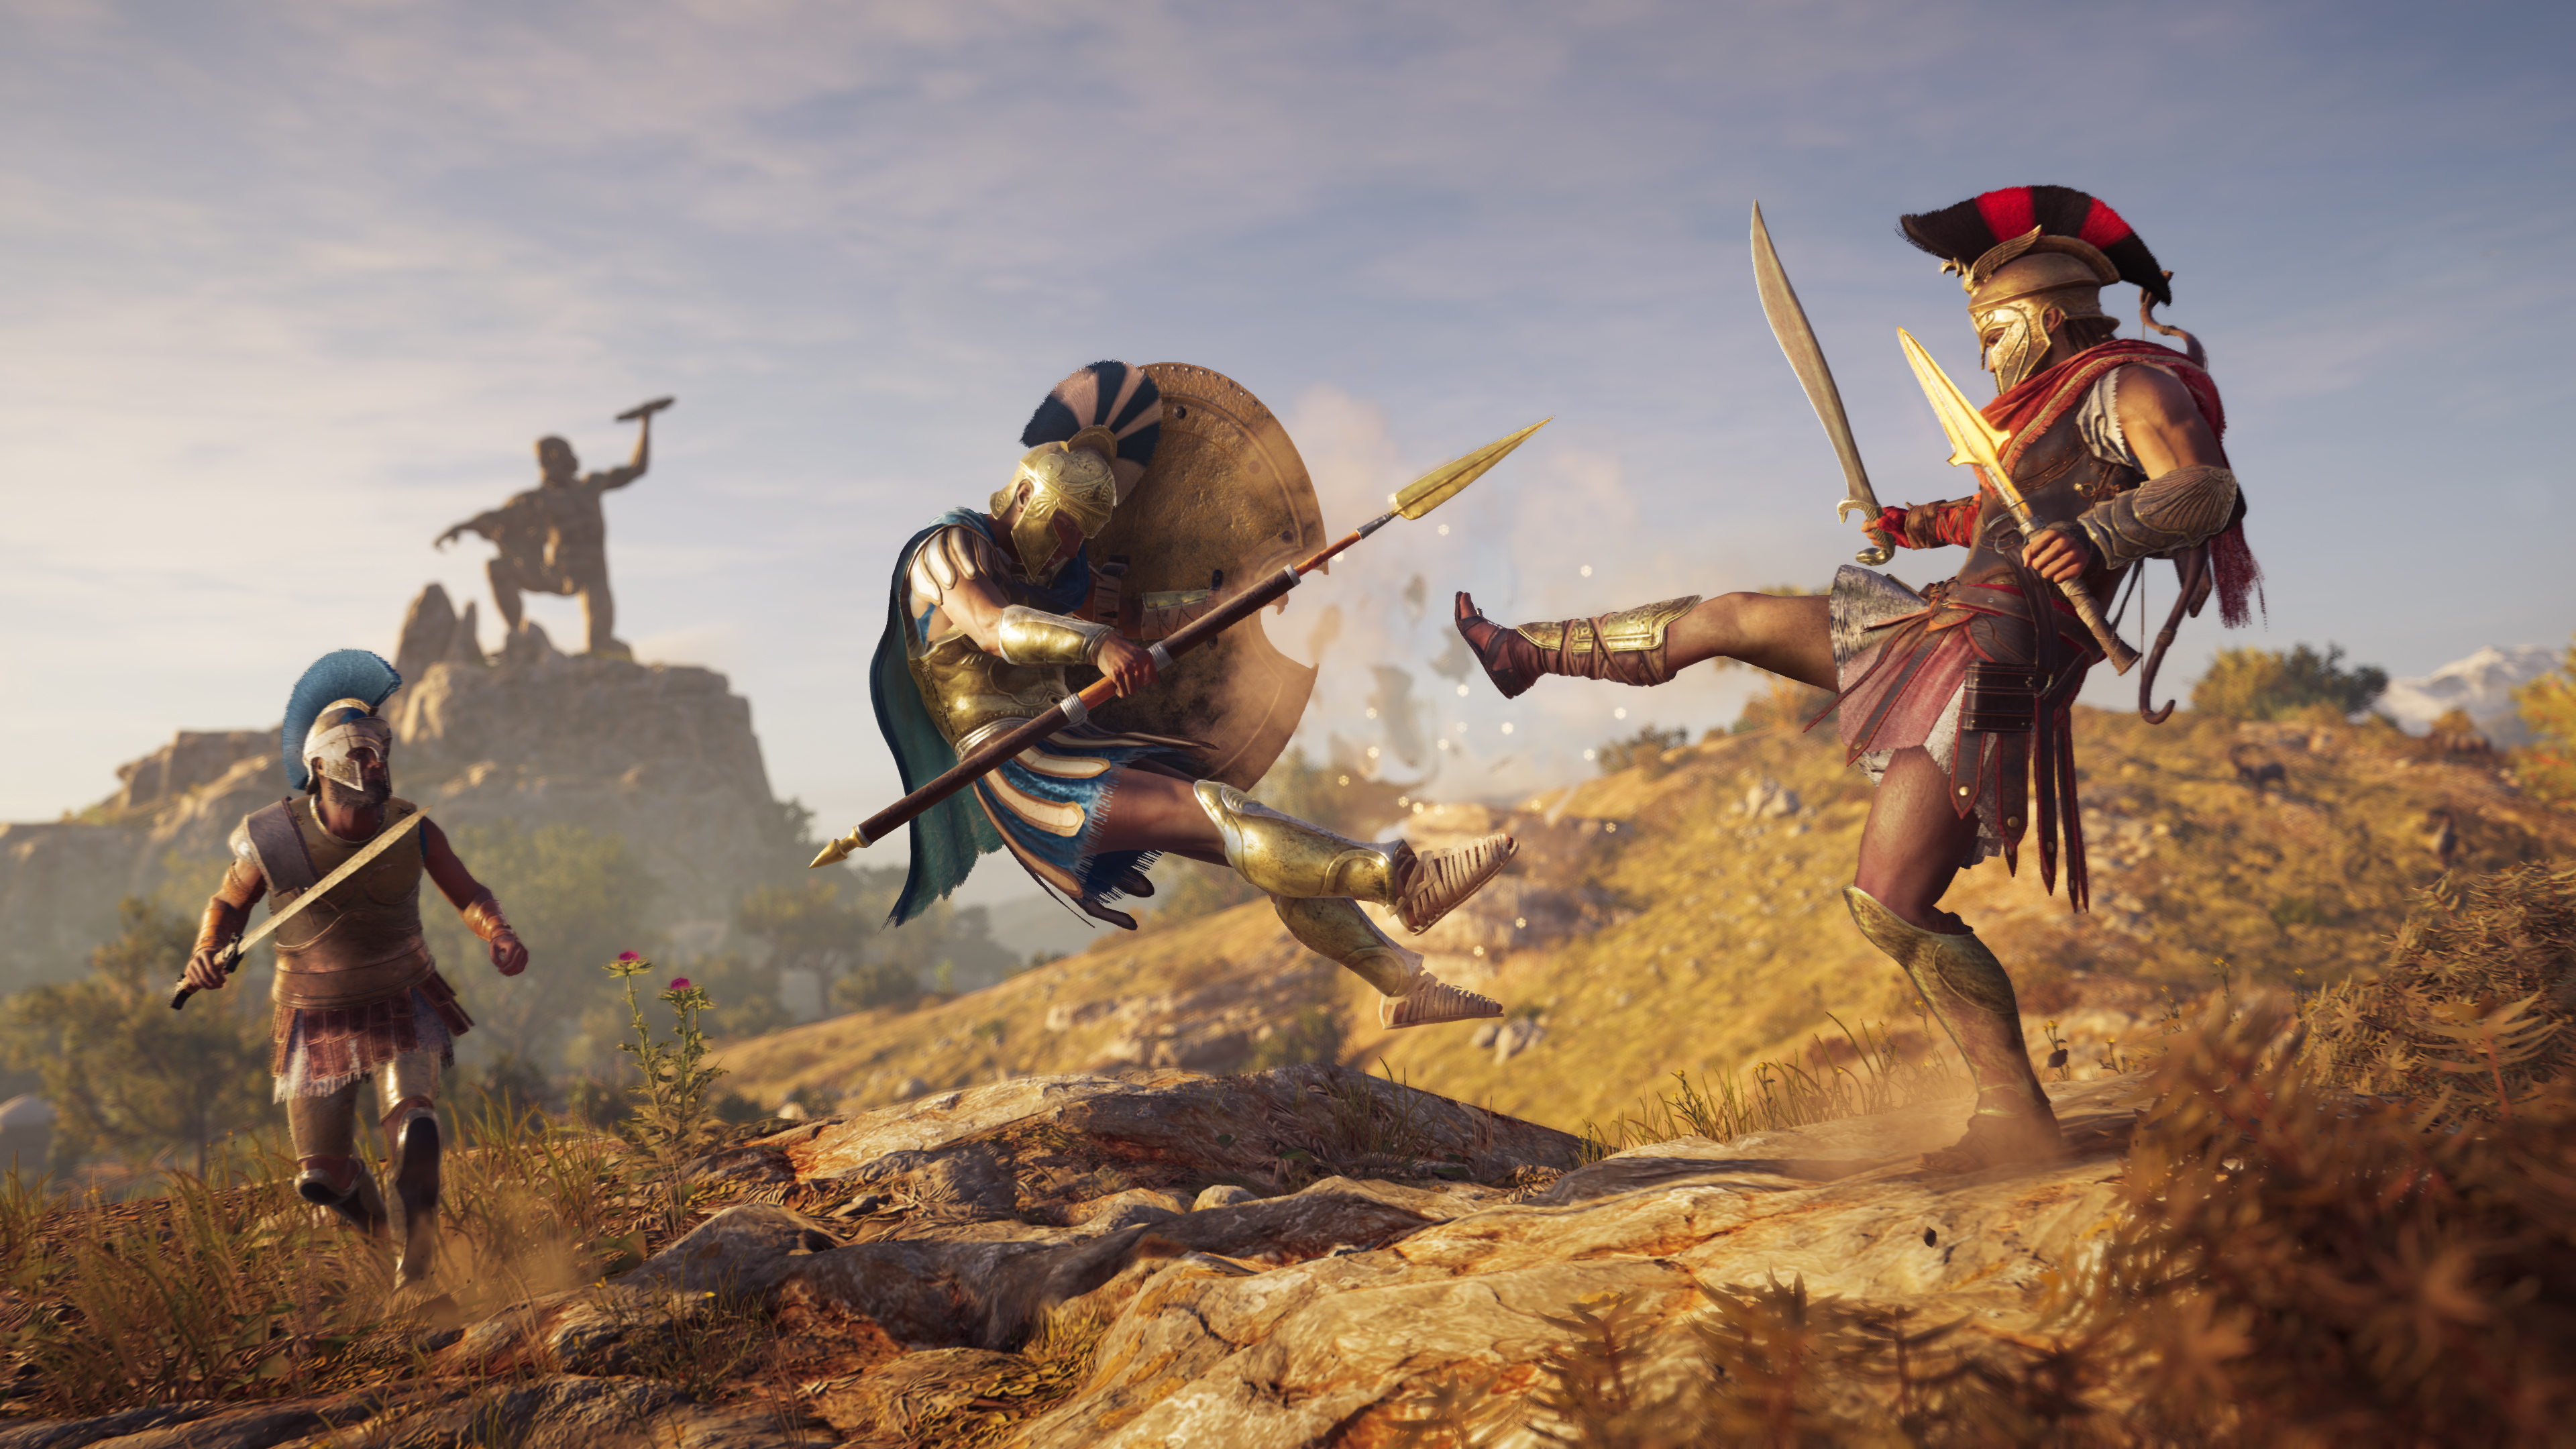 This is Sparta!: Mira el espectacular trailer de lanzamiento de Assassin's Creed Odyssey